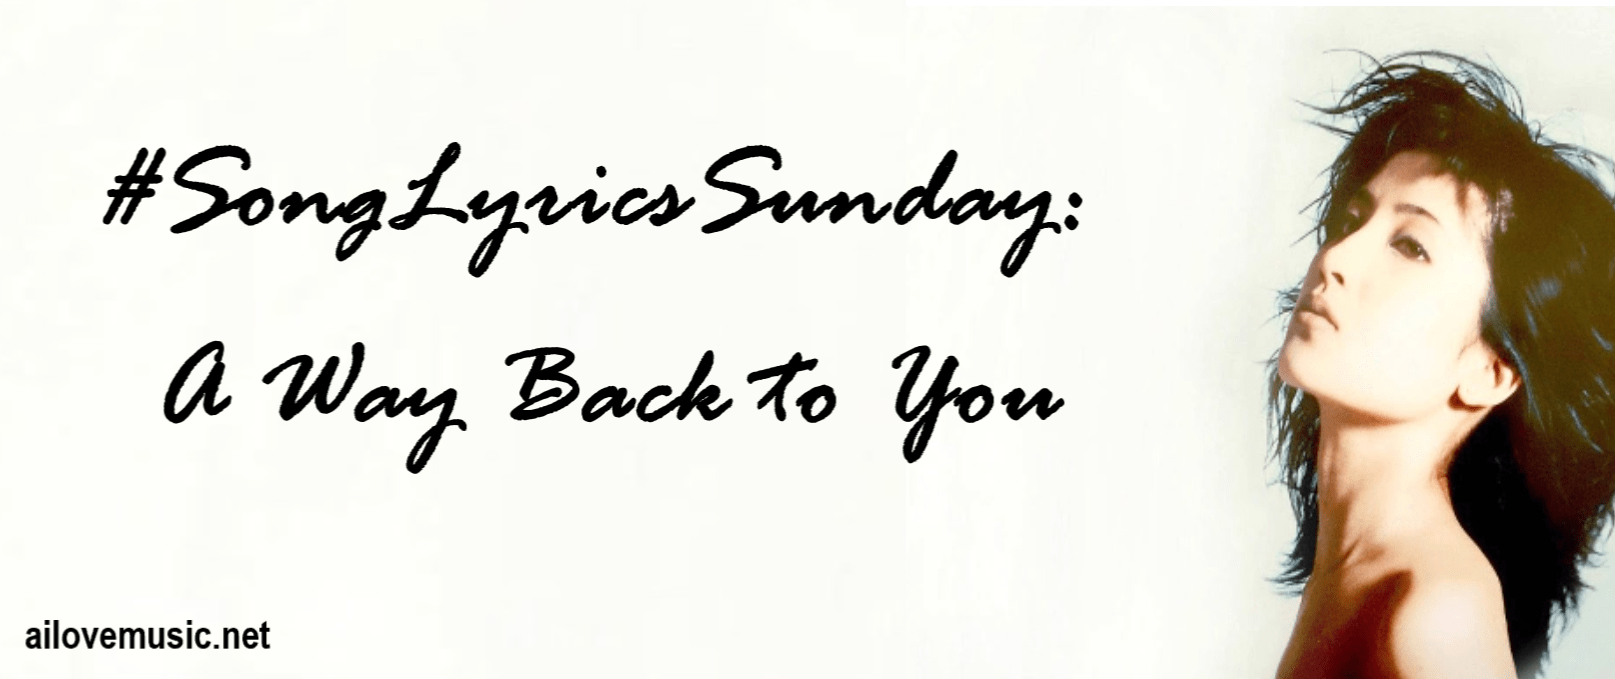 You are currently viewing #SongLyricsSunday: The Street Back to You